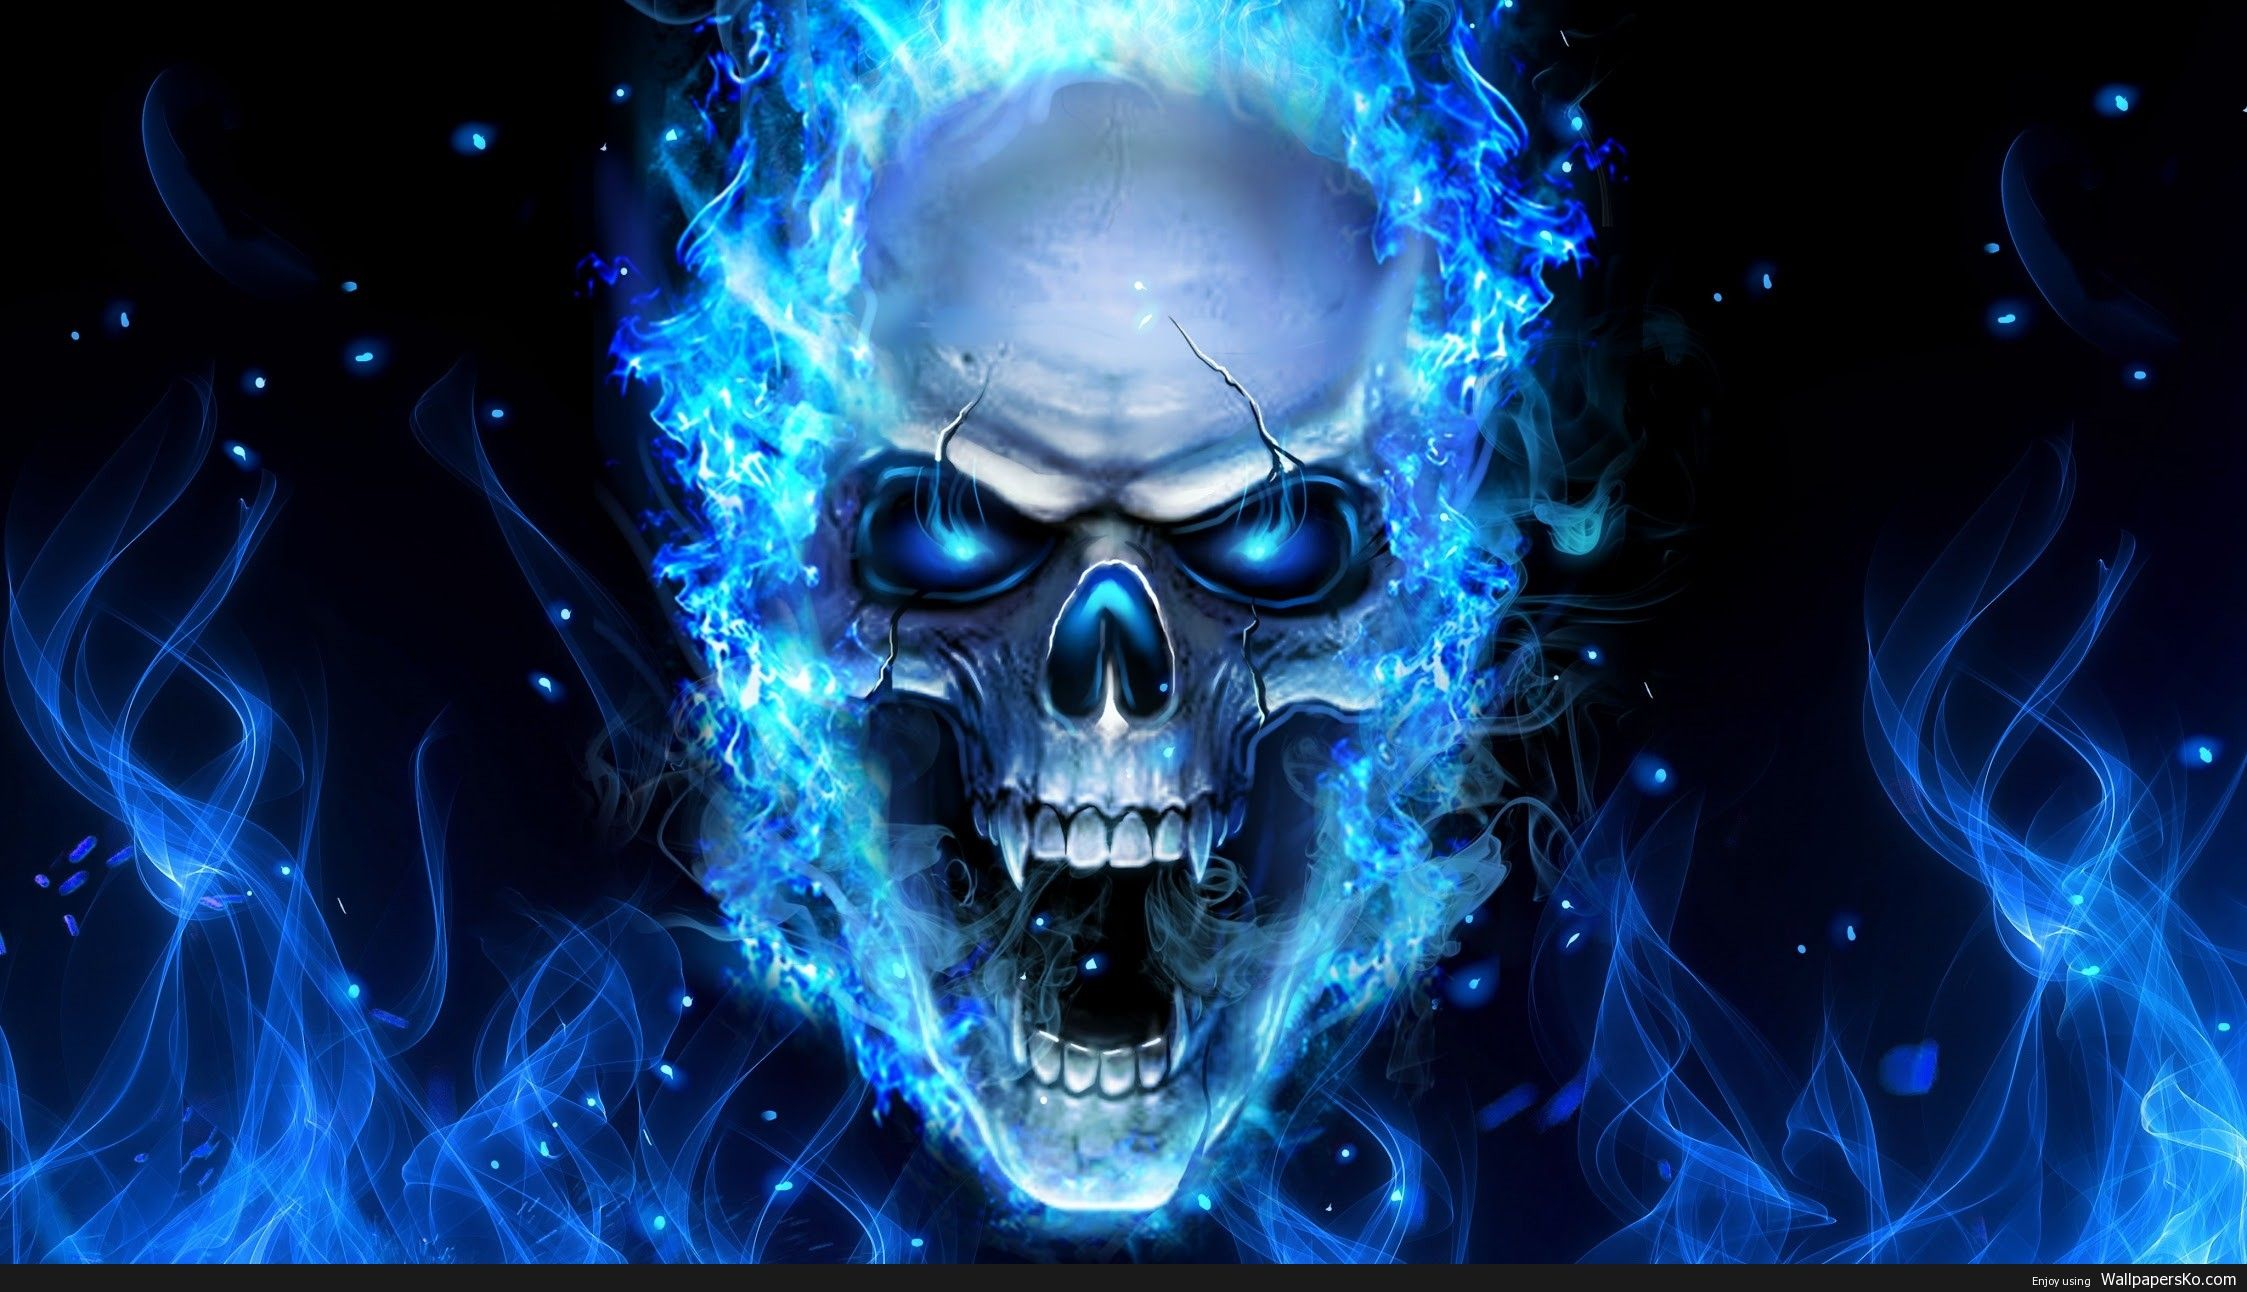 Skull On Blue Fire Http Wallpapersko Com Skull On Blue Fire Html Hd Wallpapers Download Skull Wallpaper Skull Artwork Skull